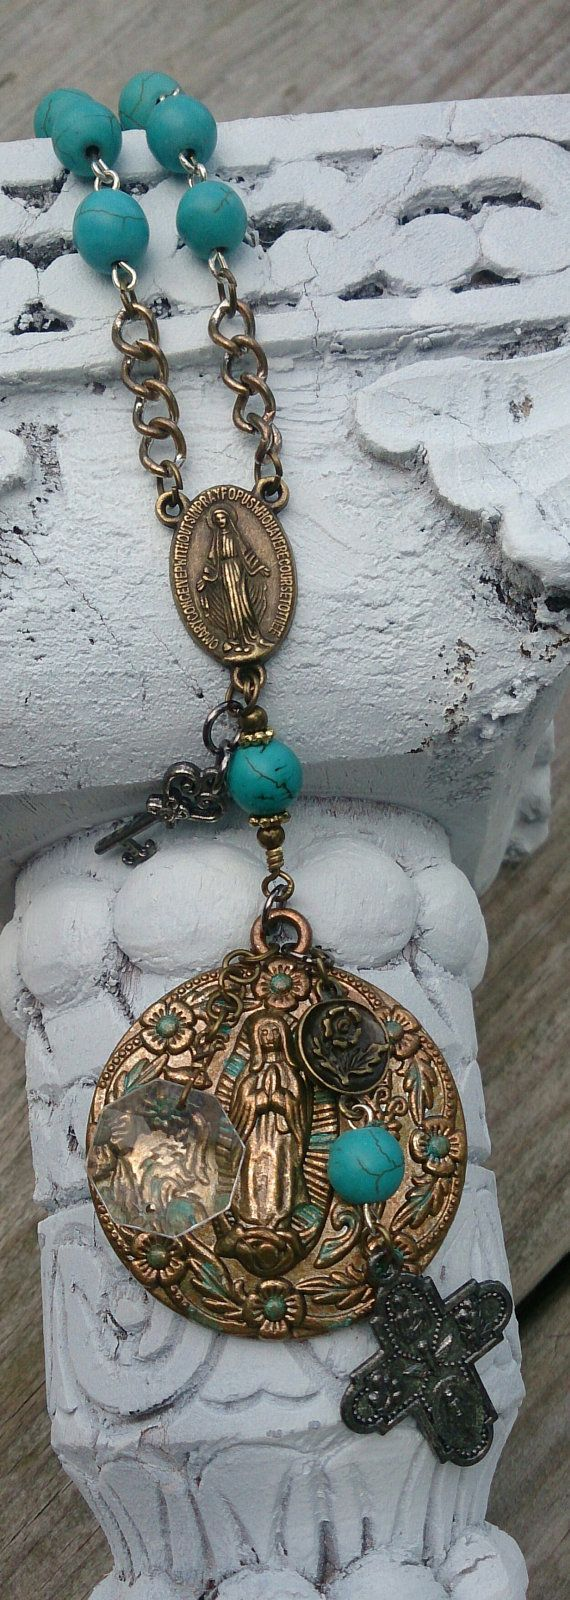 Lady Of Guadalupe Cross Necklace, Religious Necklace, Christian Jewelry, Mother Mary, Assemblage Necklace #rosaryjewelry Turquoise Rosary Cross Religious Necklace by SecretStashBoutique, $46.00 #rosaryjewelry